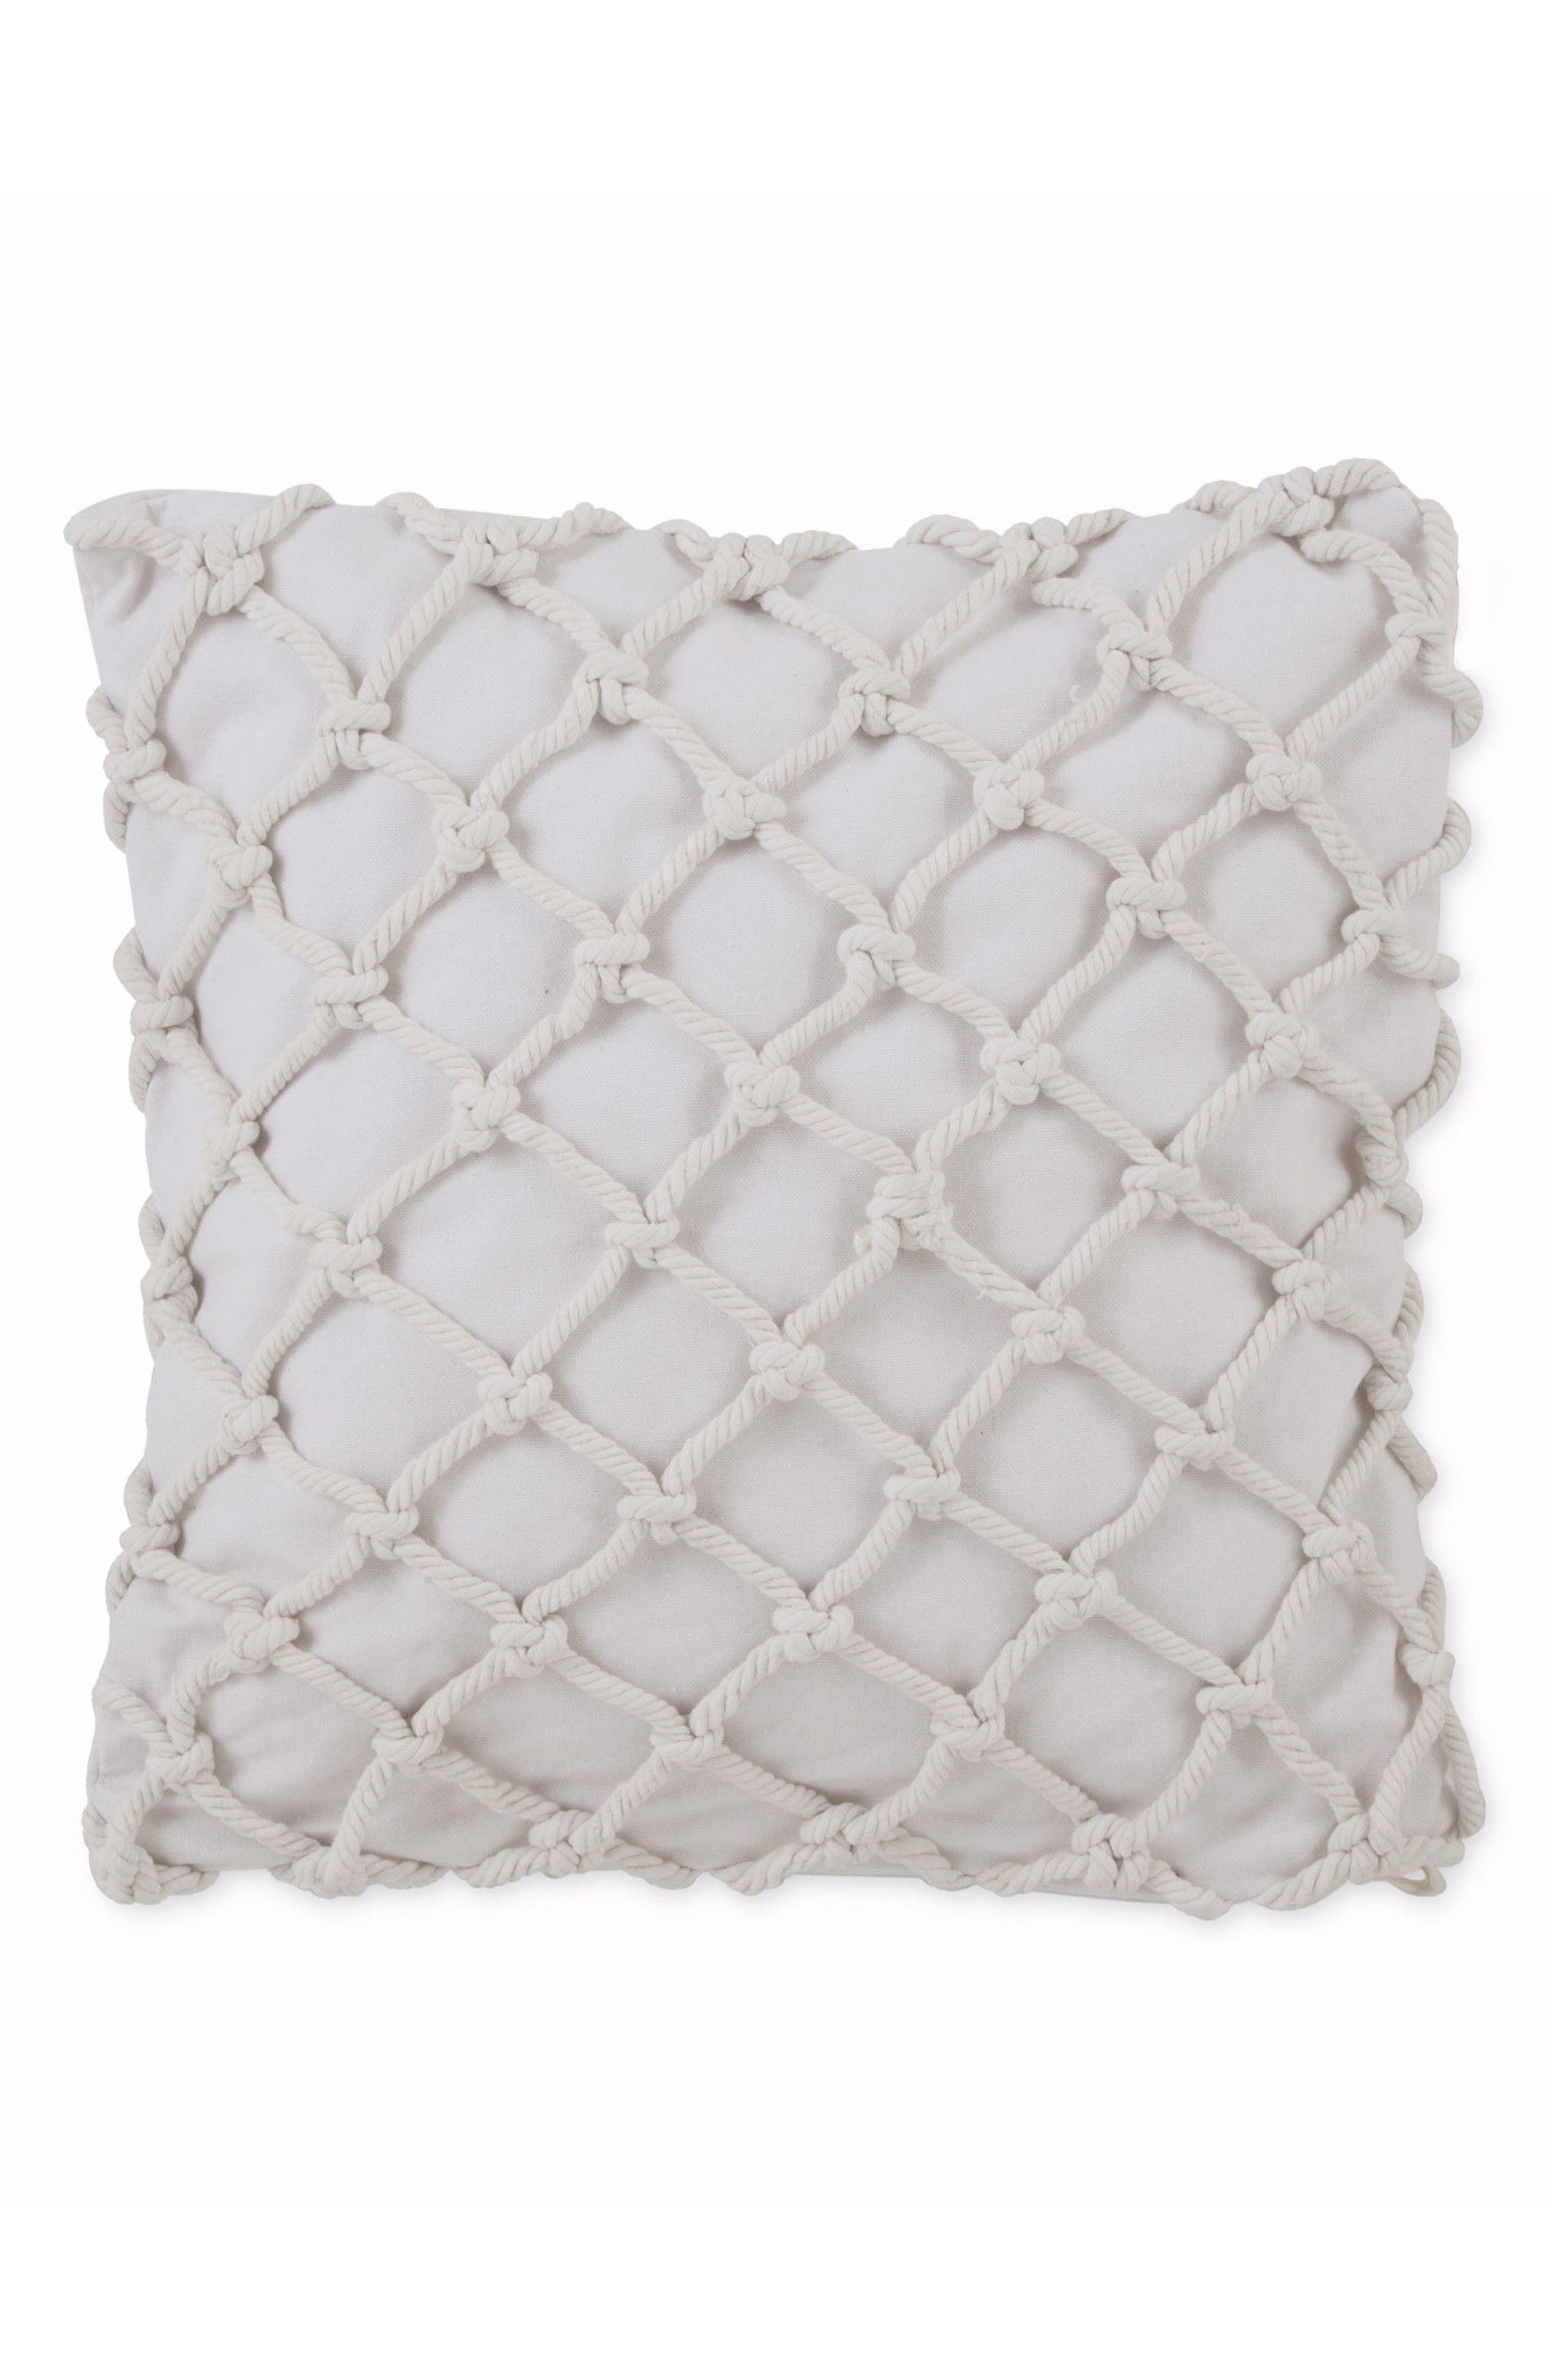 Knotted Rope Square Accent Pillow,                             Main thumbnail 1, color,                             White